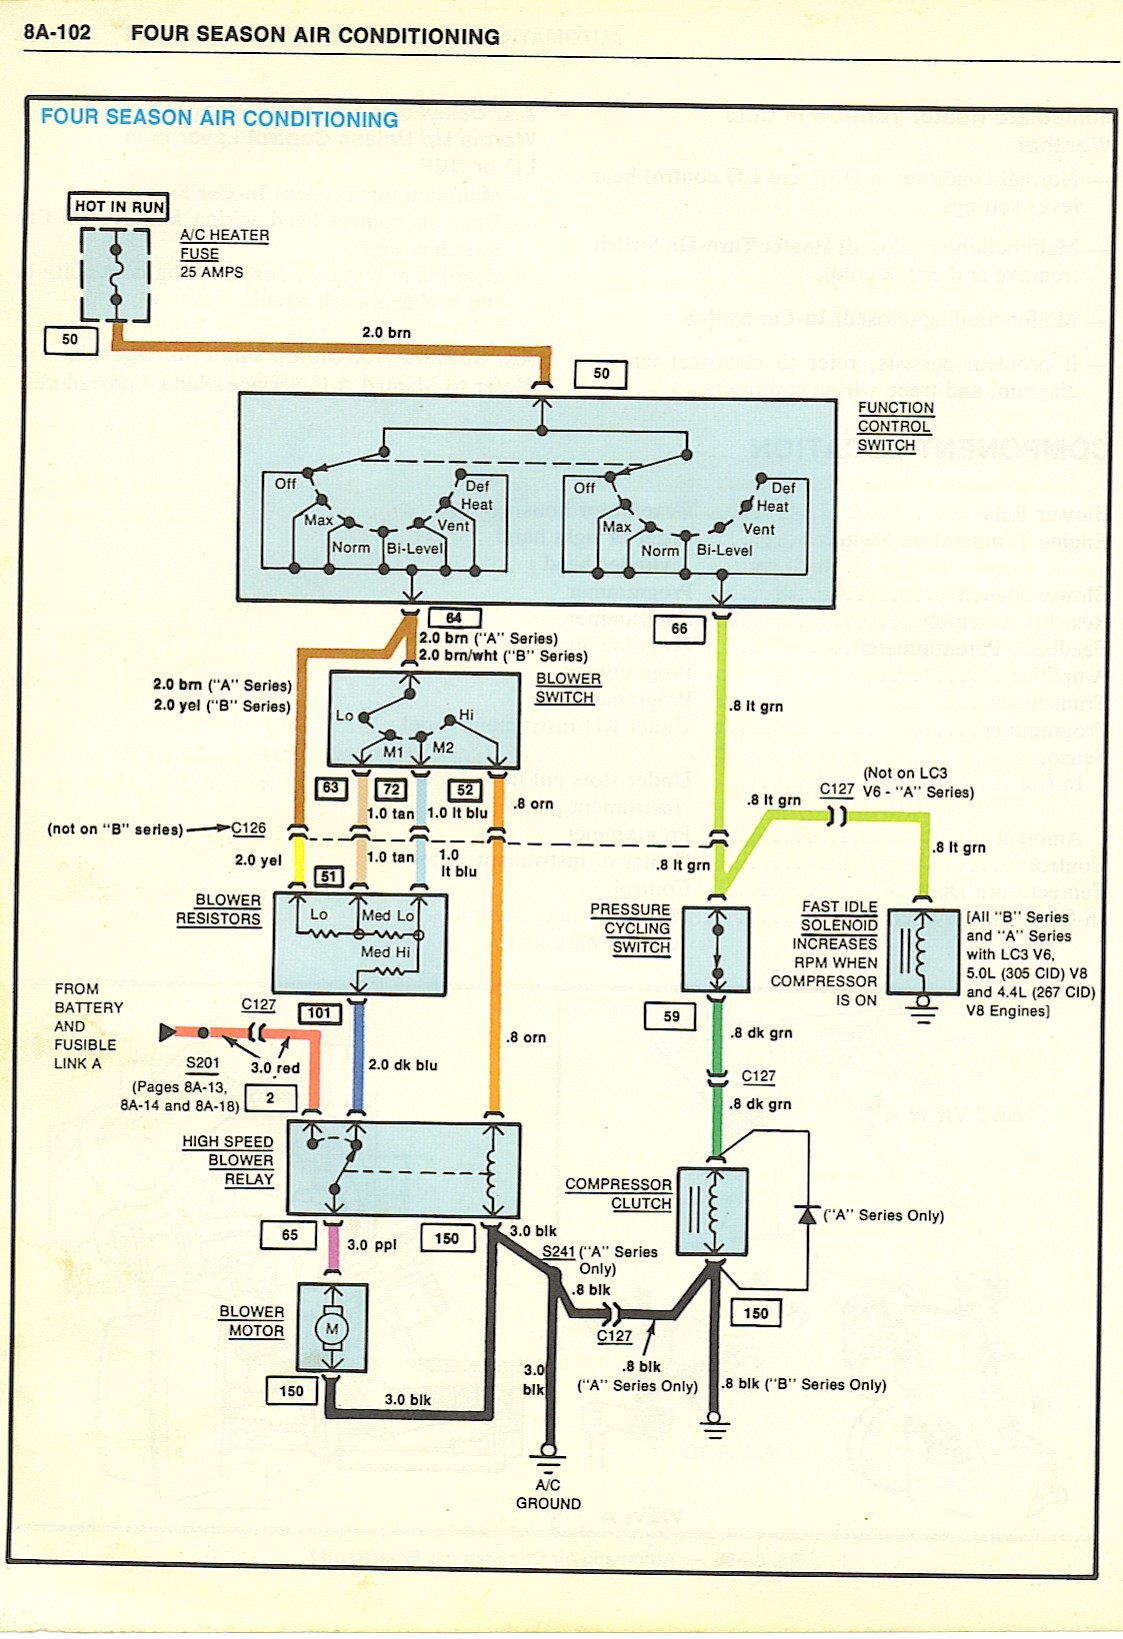 Room Air Conditioner Wiring Diagram Services Conditioning Diagrams Trane Ac Drawing At Getdrawings Com Free For Personal Use Of Rh Compressor